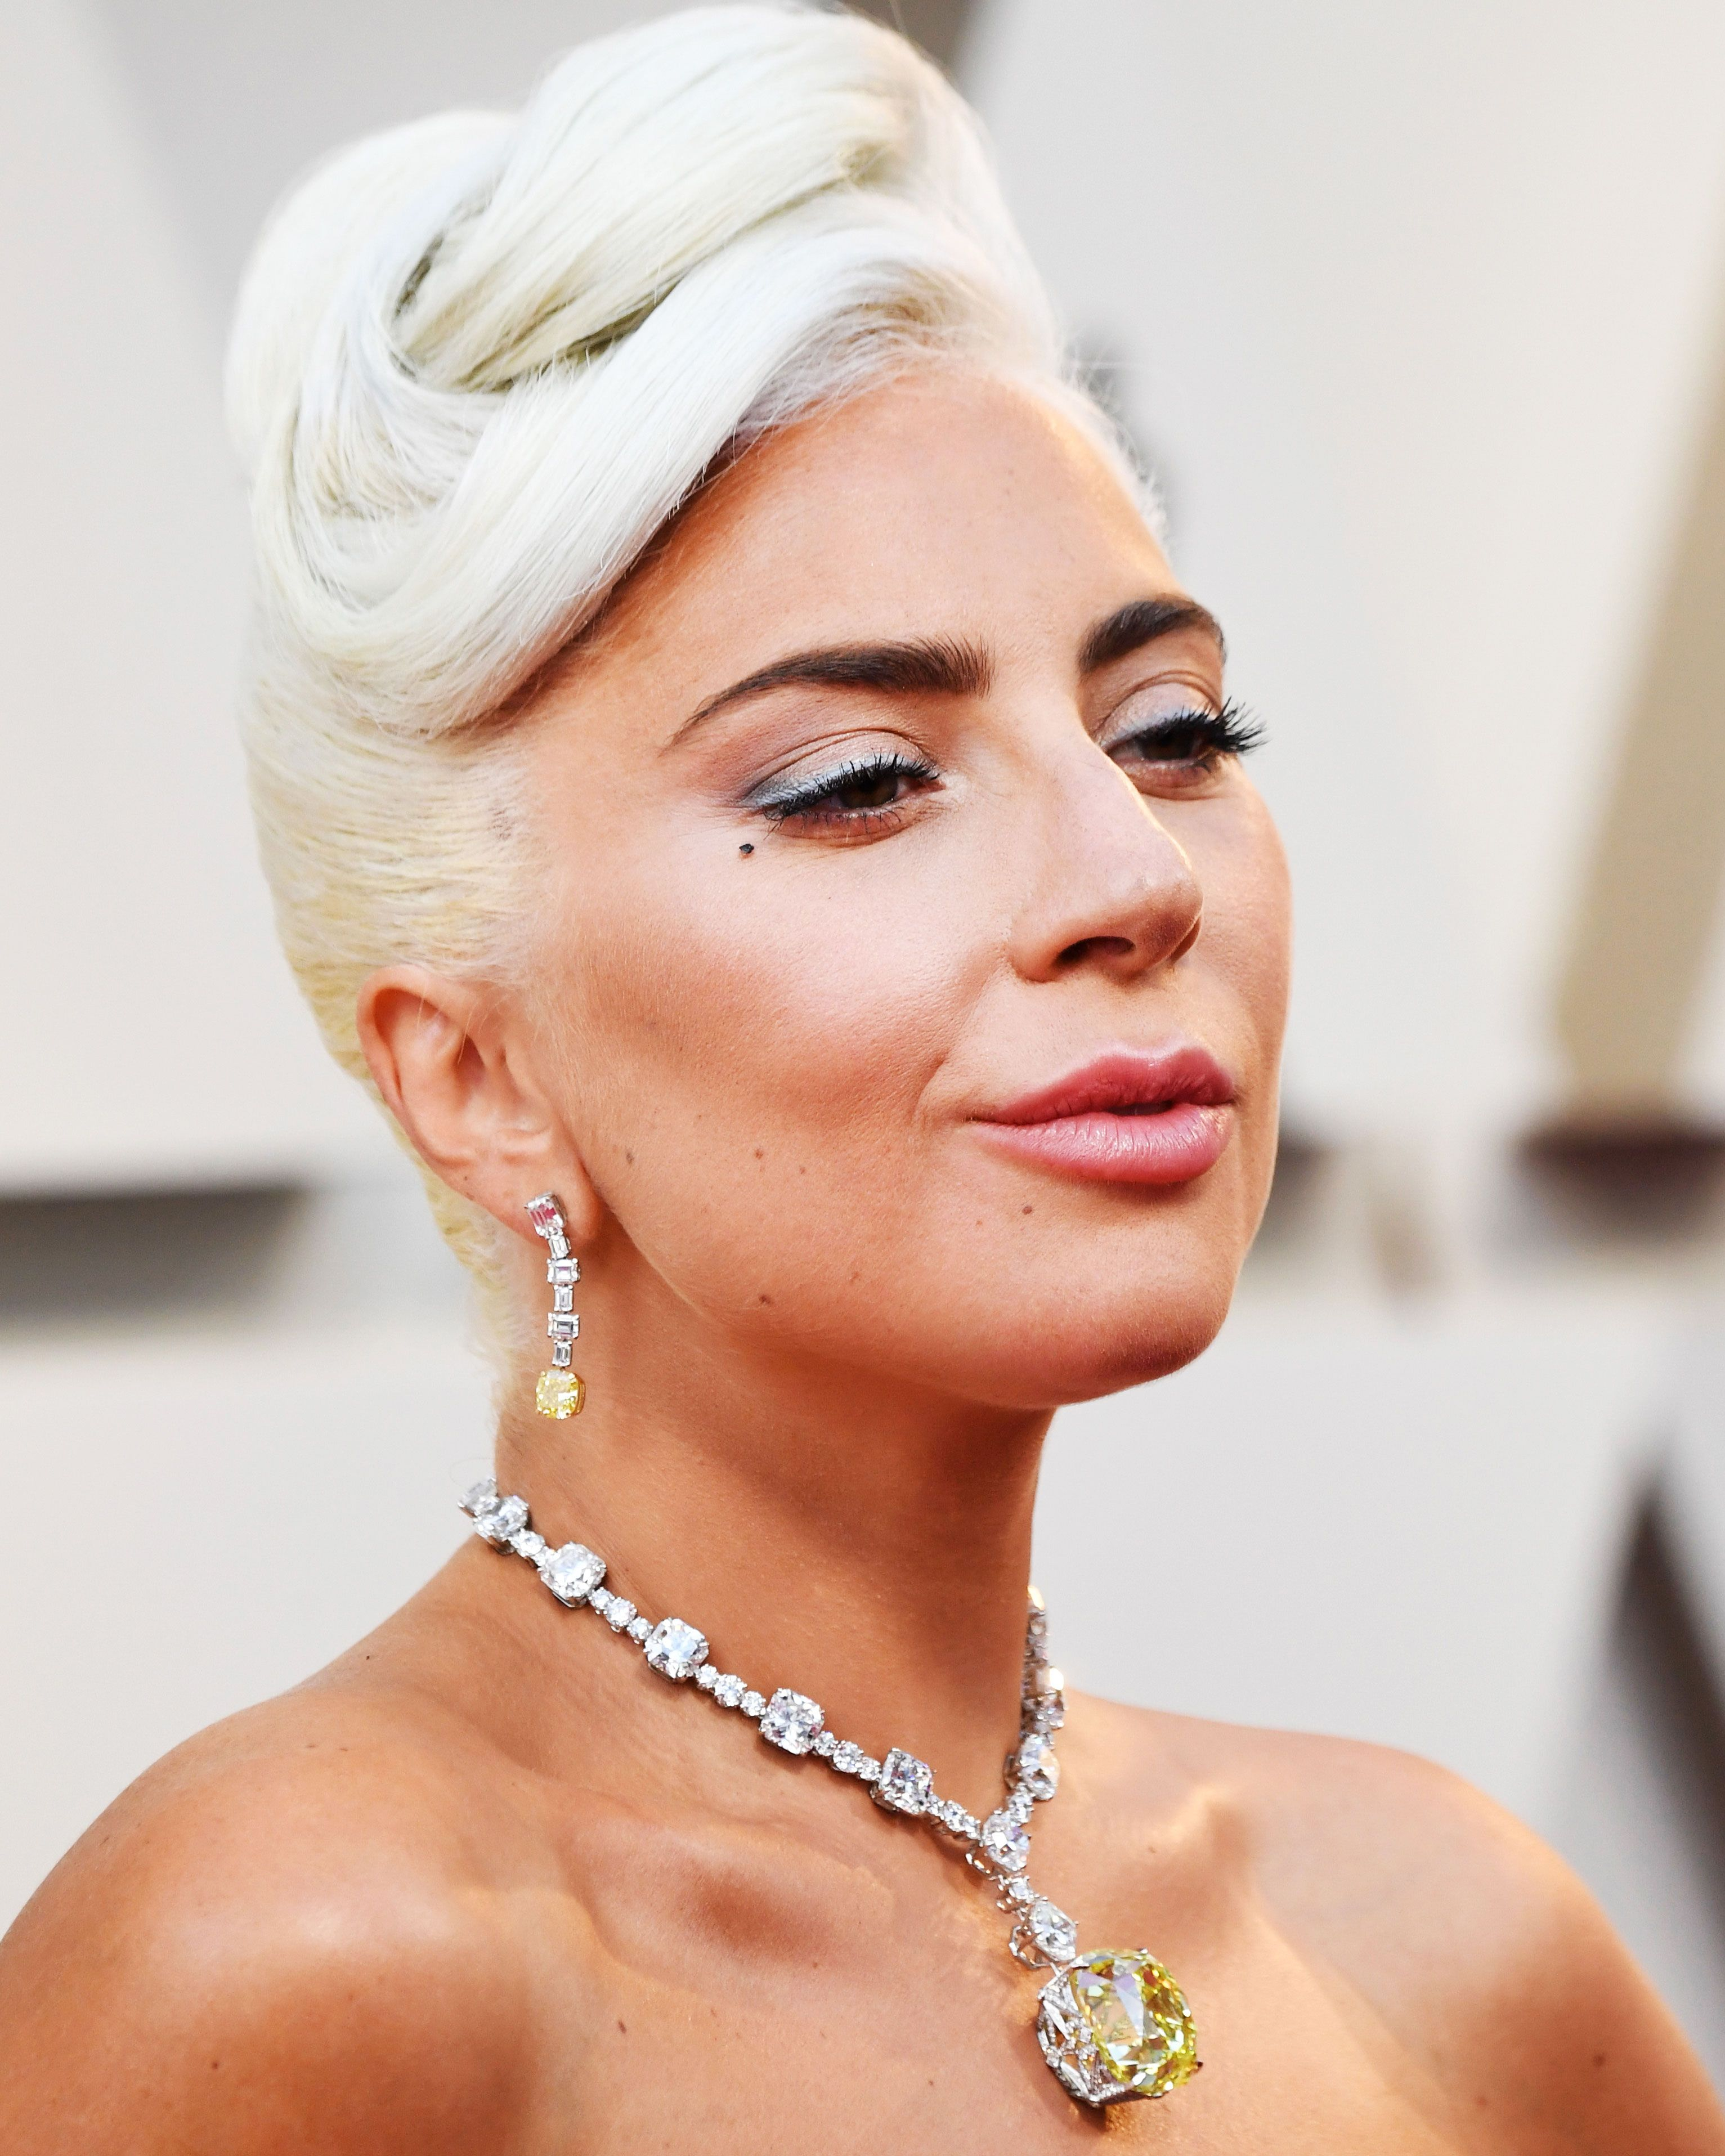 Did lady gaga ever have sex